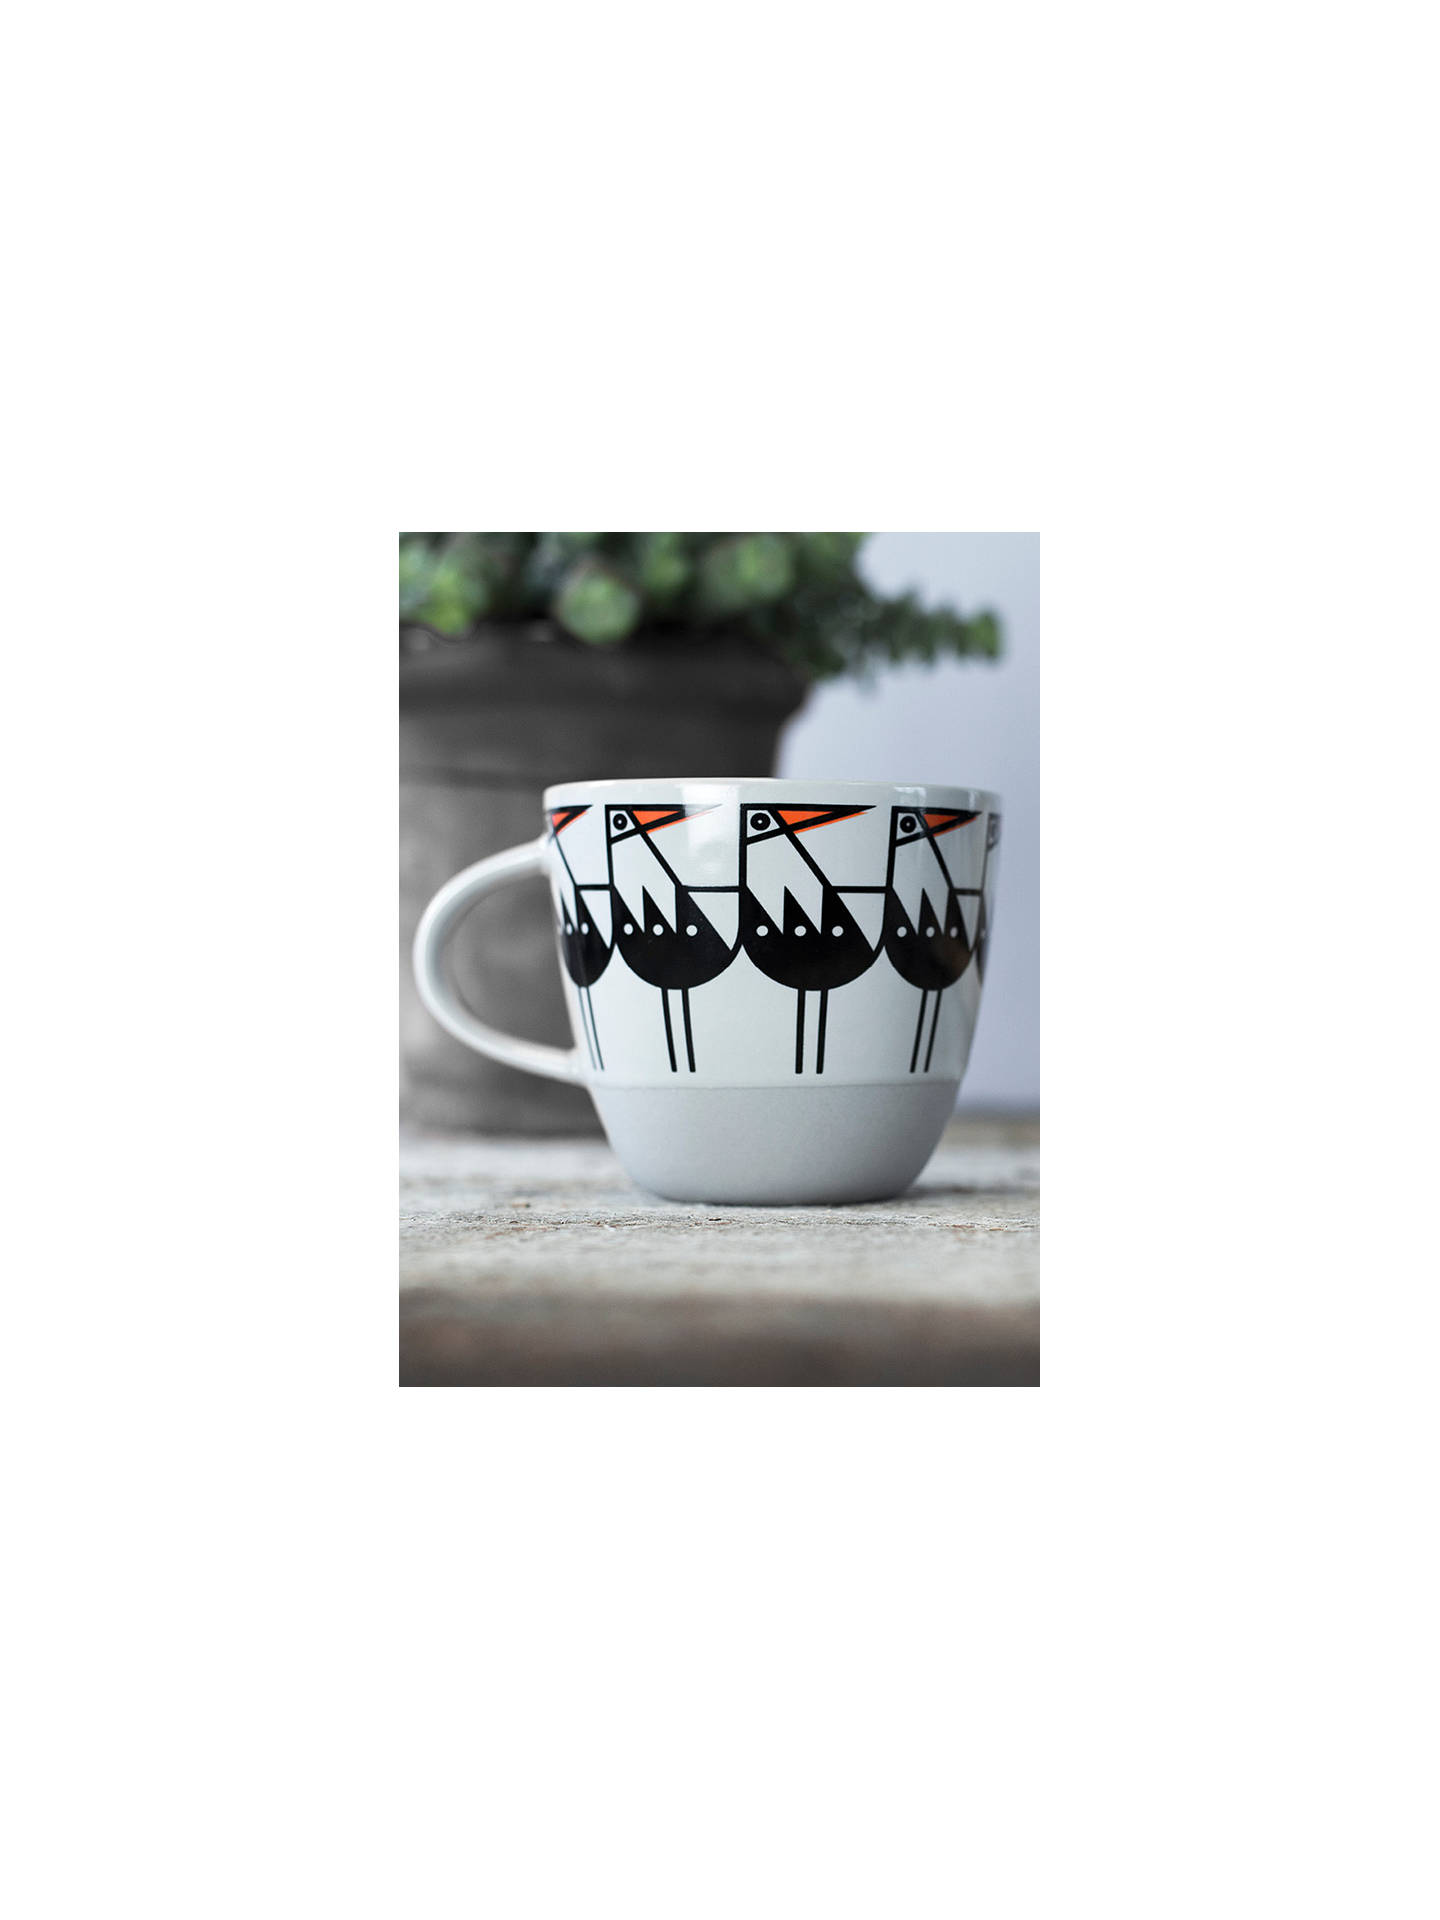 BuyBert & Buoy Oyster Catcher Mug, White/Multi, 330ml Online at johnlewis.com